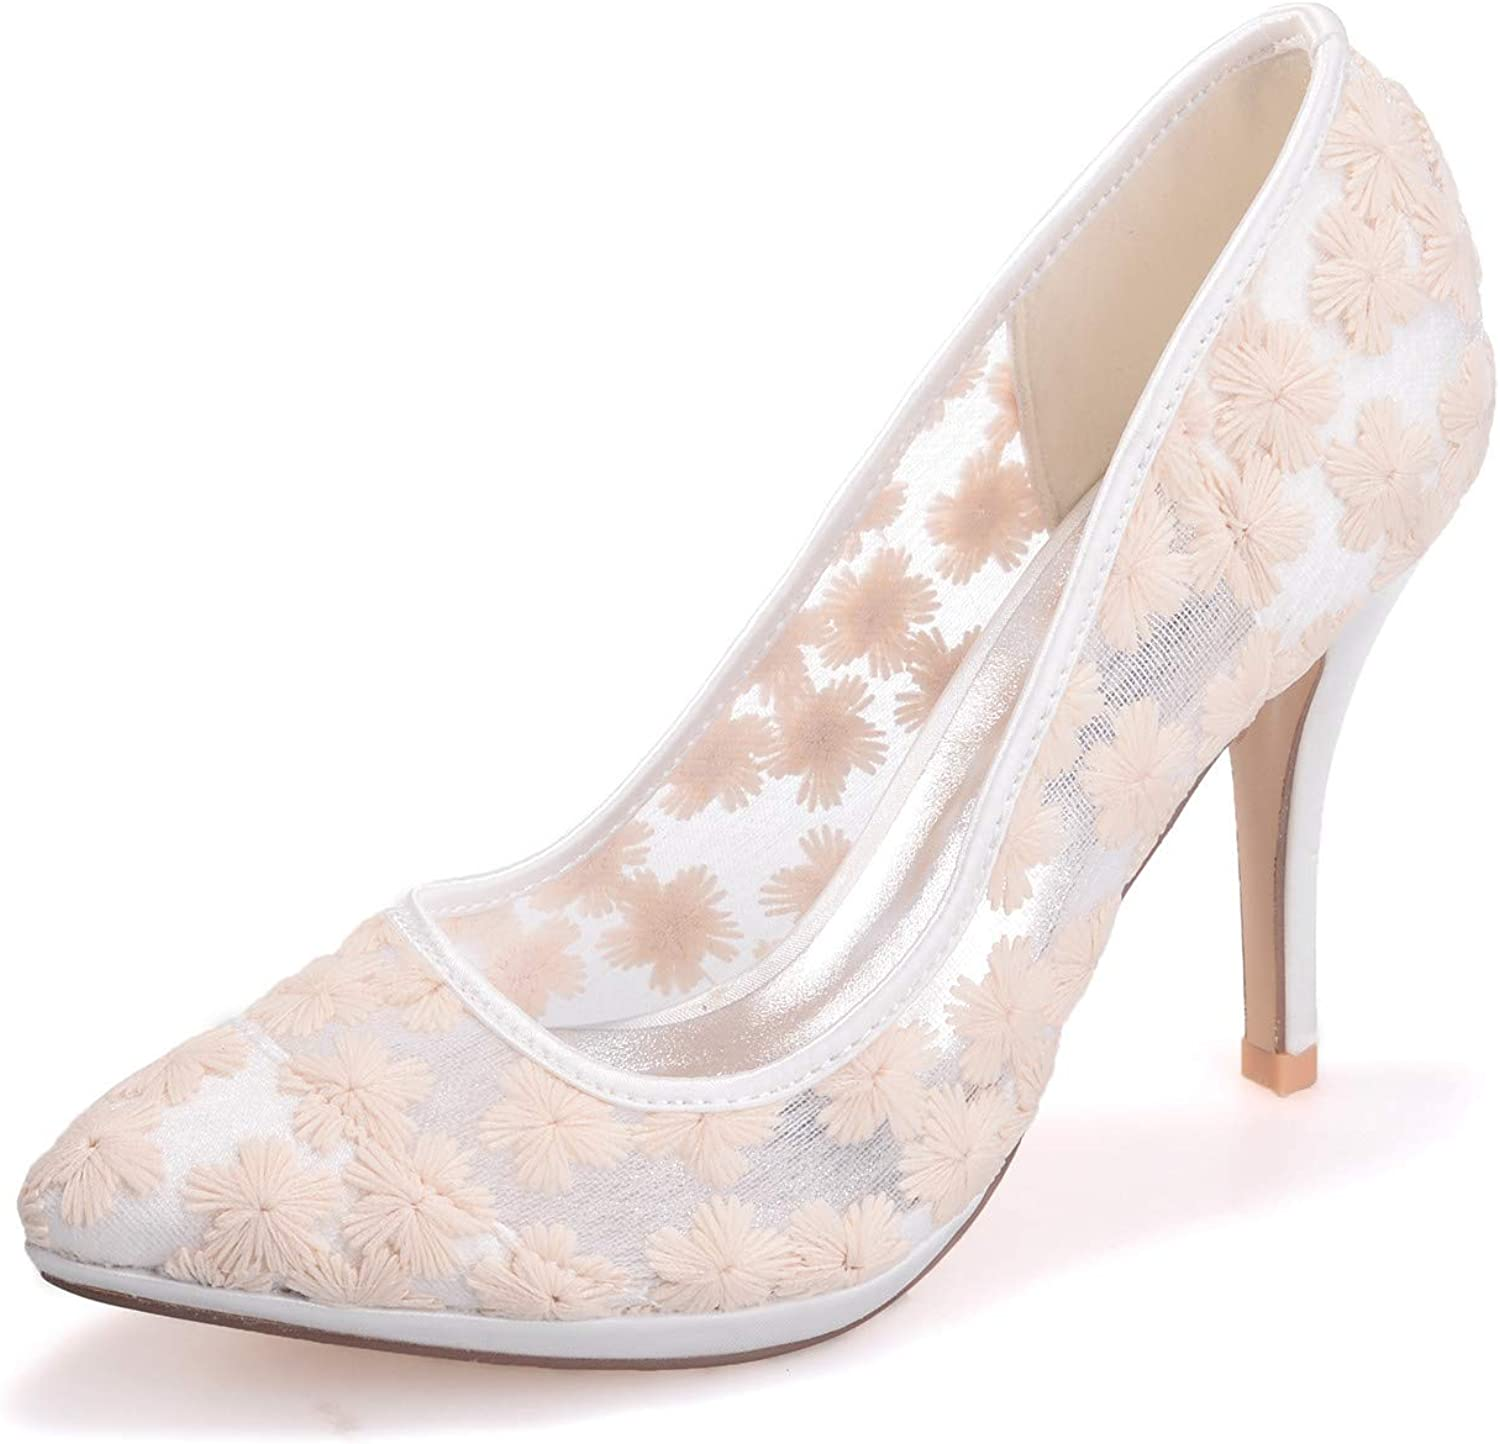 LLBubble Women High Heels Pointed Toe Lace Wedding Party shoes Slip-on Prom Evening Formal Party Dress Pumps 0255-31